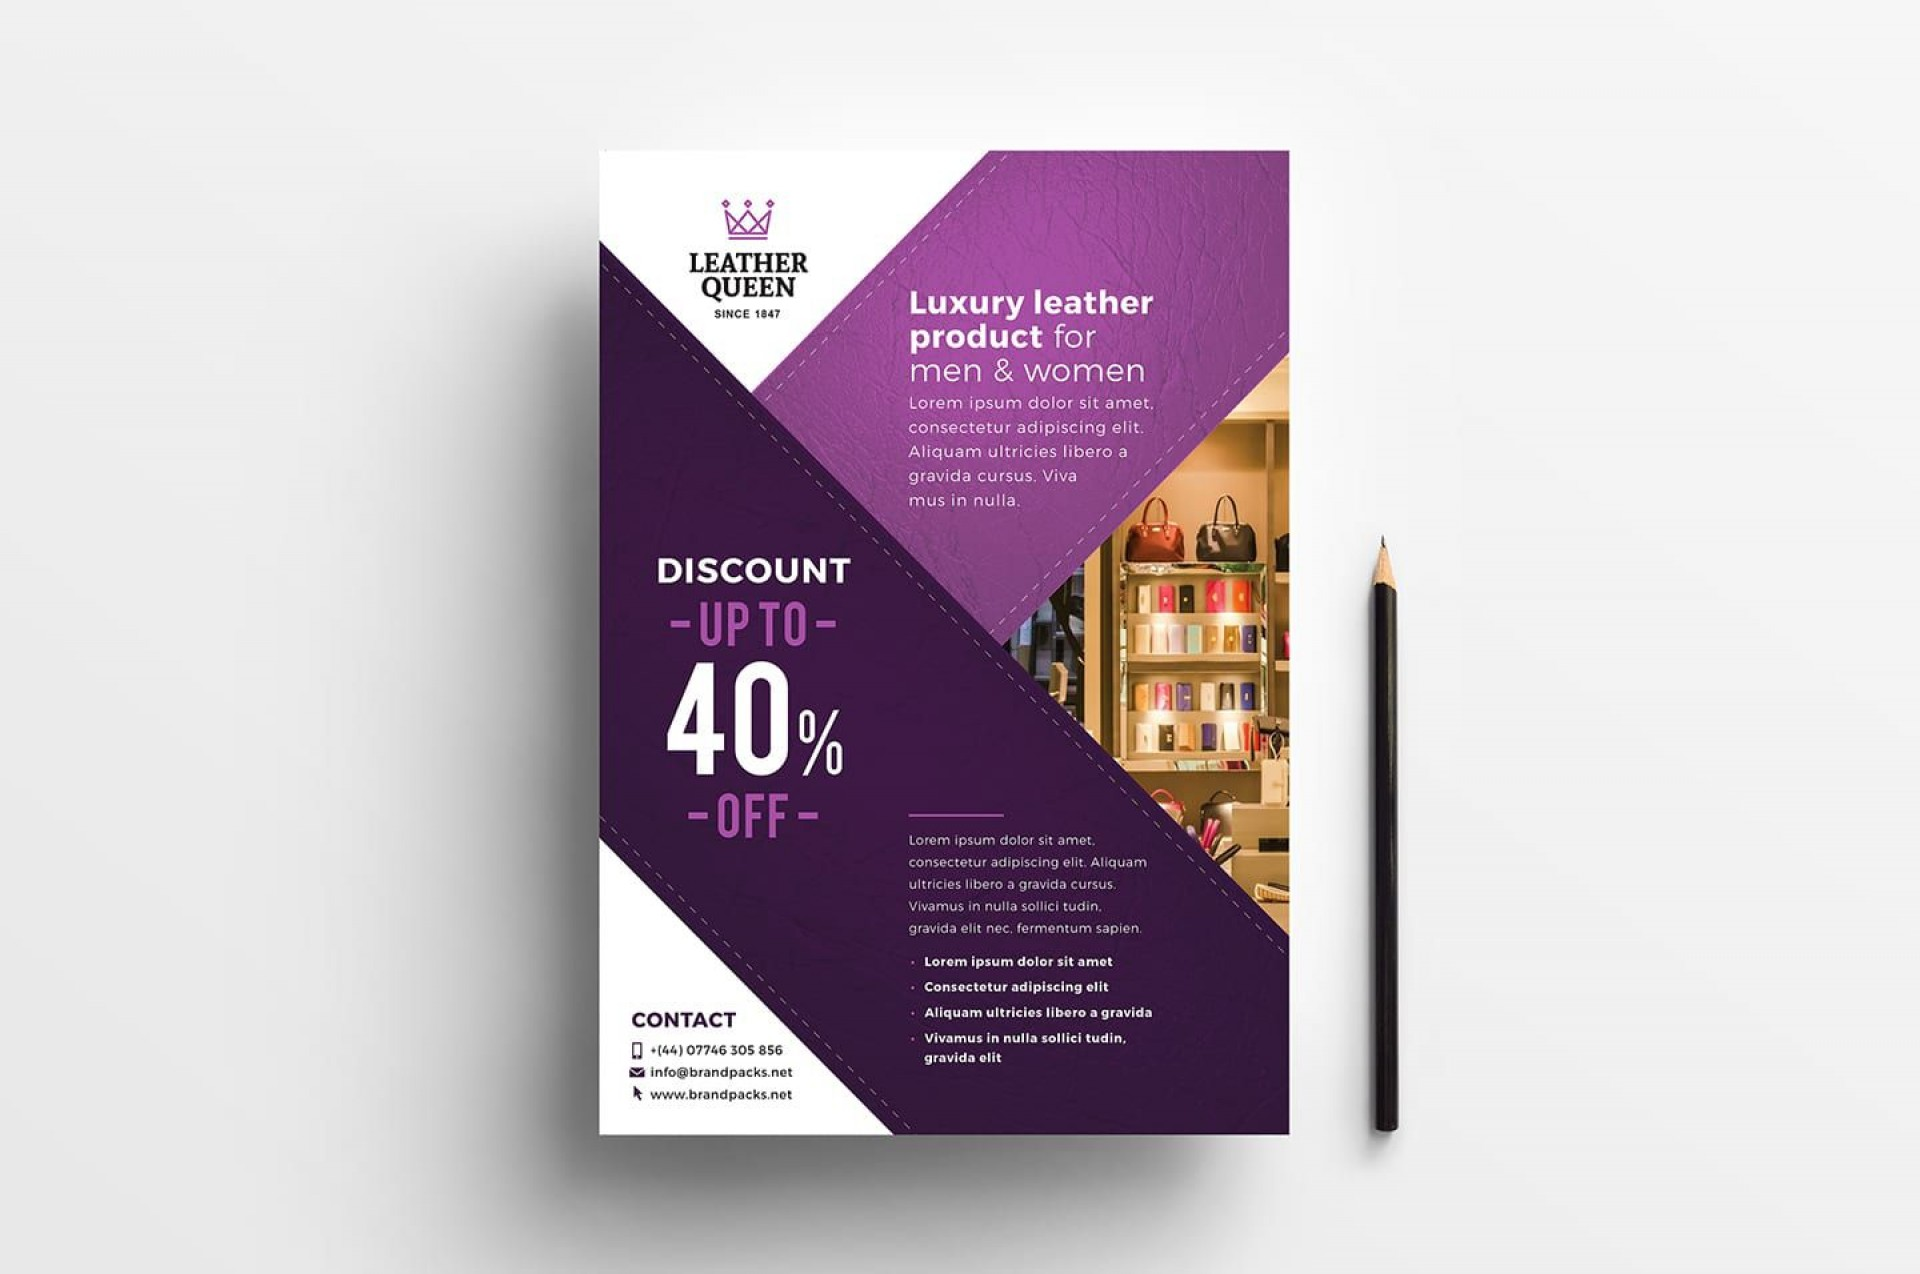 005 Singular Adobe Photoshop Psd Poster Template Free Download Highest Quality 1920